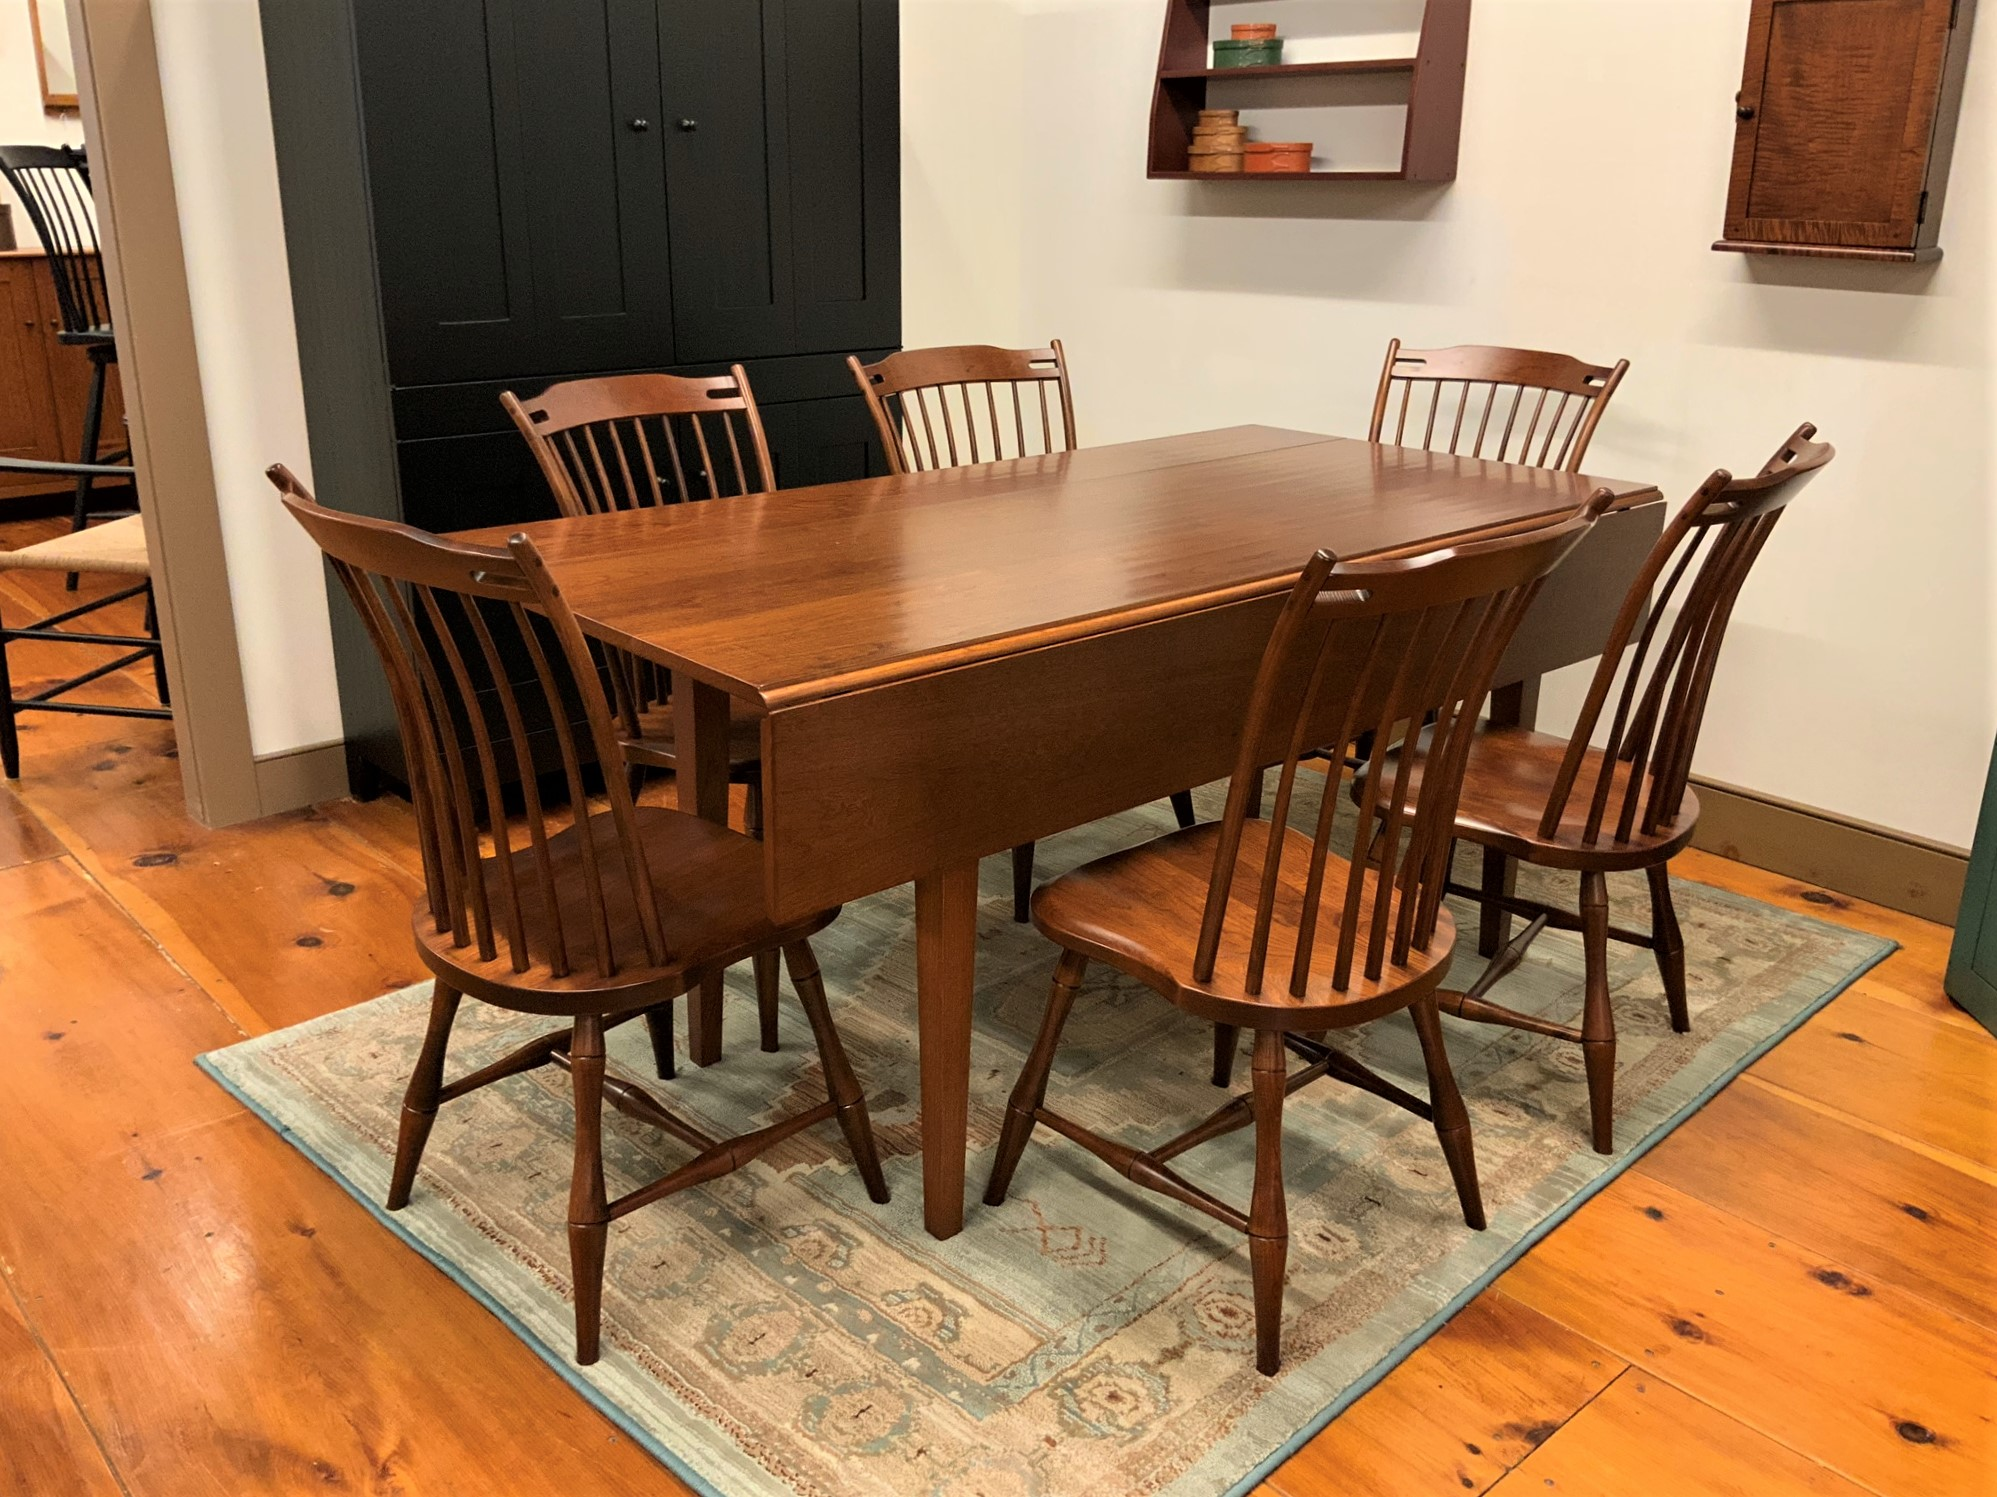 Miraculous Plate 15 Shaker Drop Leaf Table And 6 Chair Set Machost Co Dining Chair Design Ideas Machostcouk